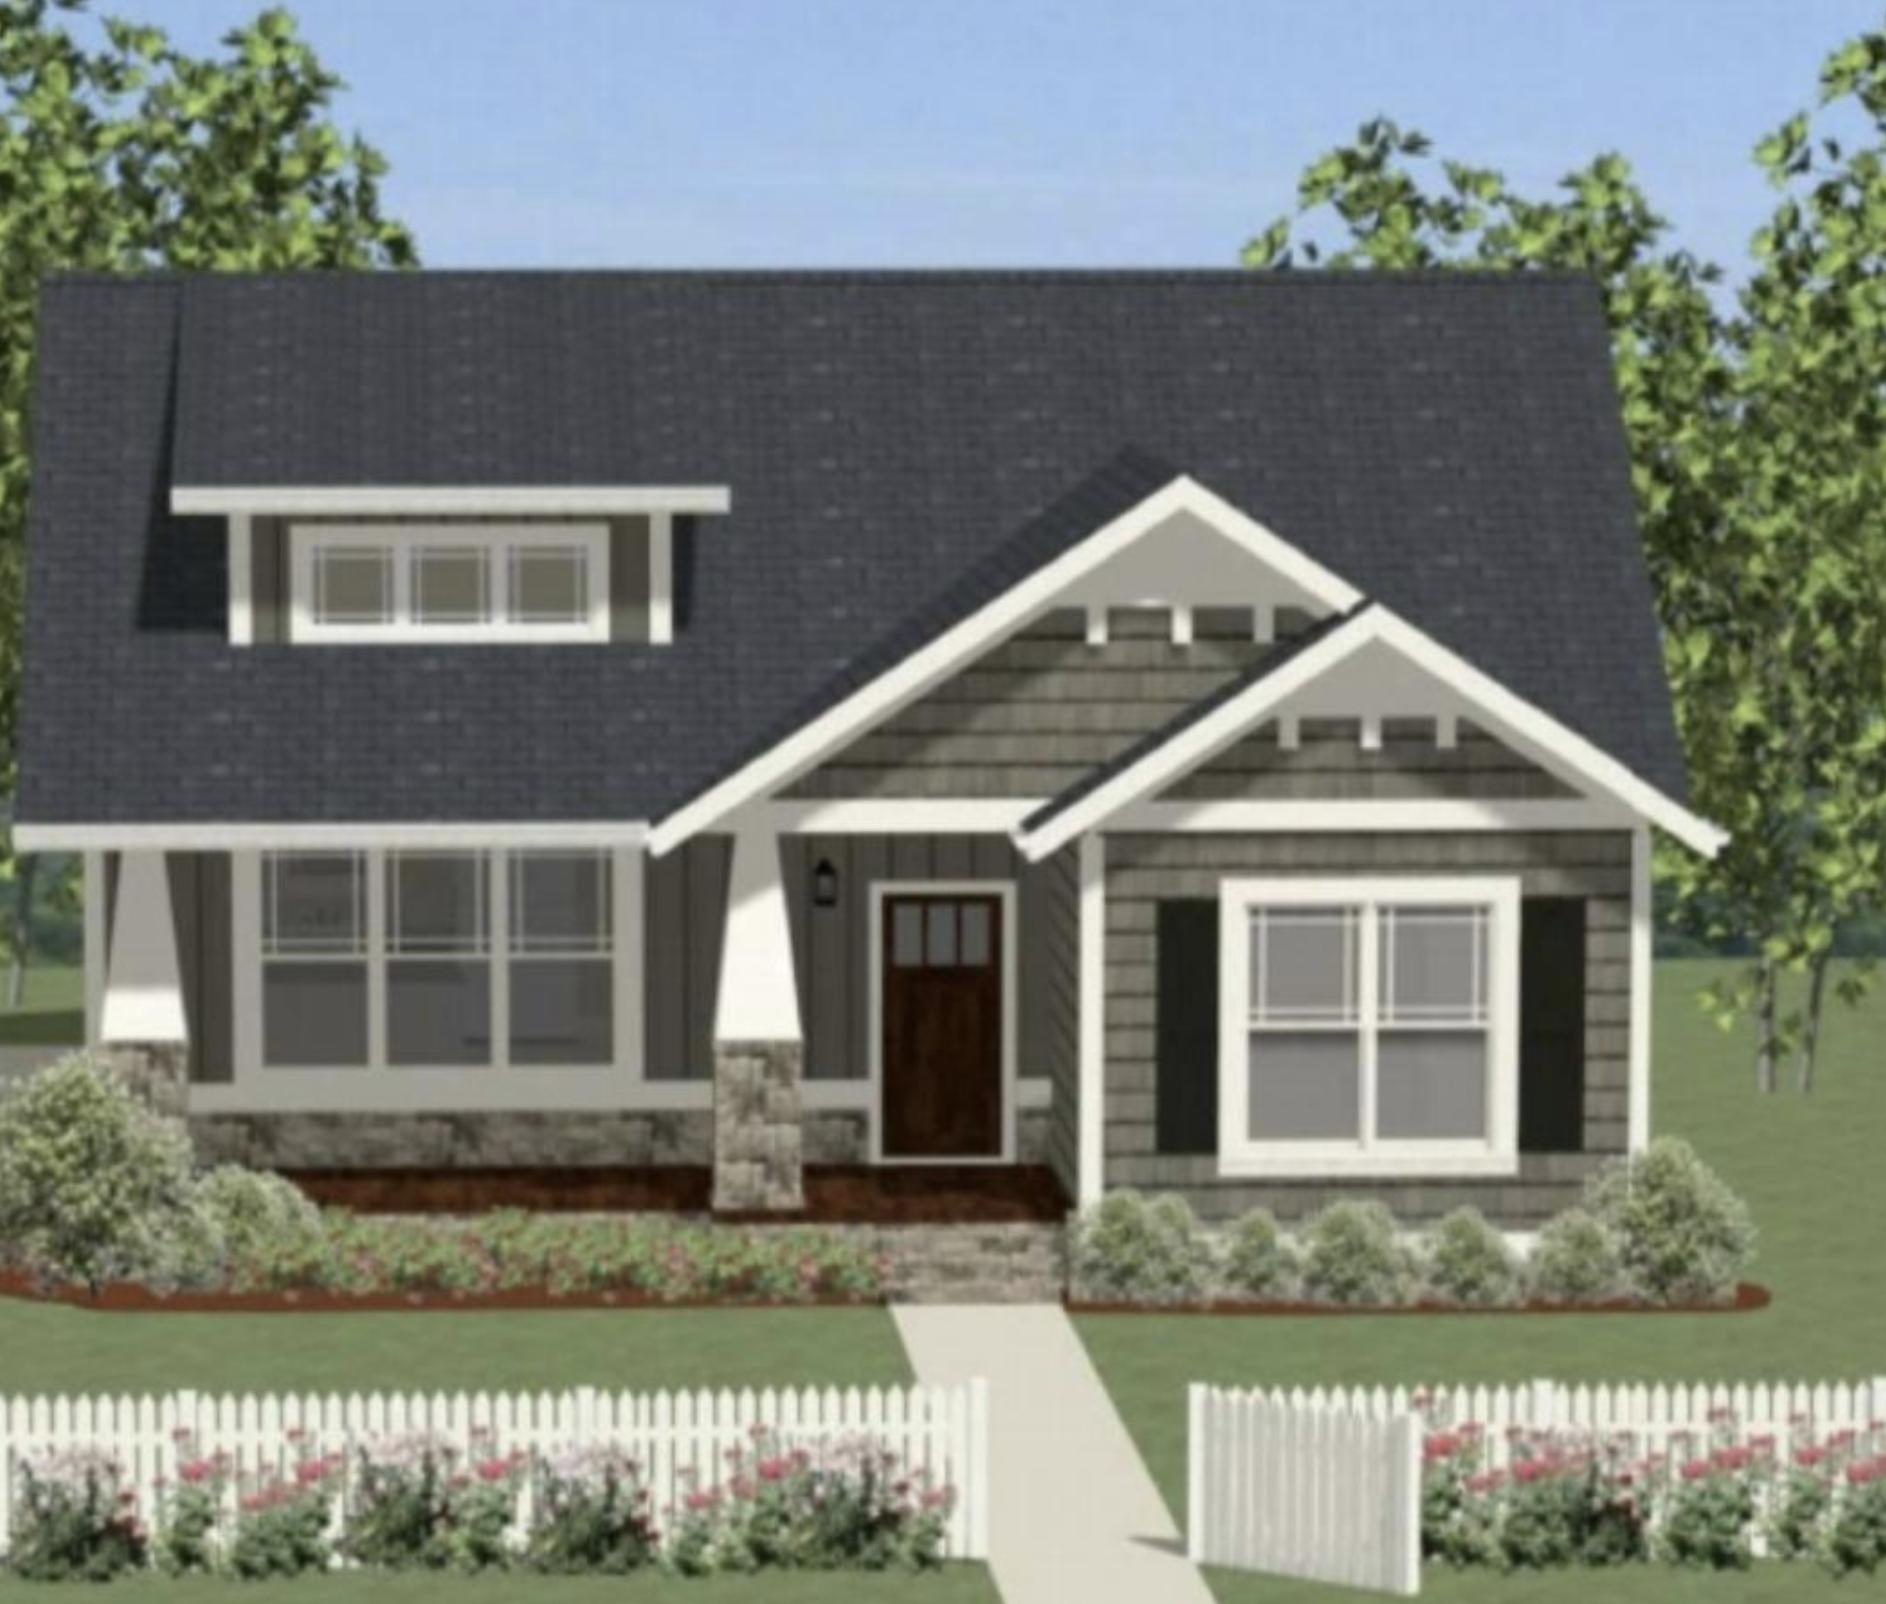 2301 5th, Knoxville, Tennessee, United States 37917, 2 Bedrooms Bedrooms, ,2 BathroomsBathrooms,Single Family,For Sale,5th,1112192